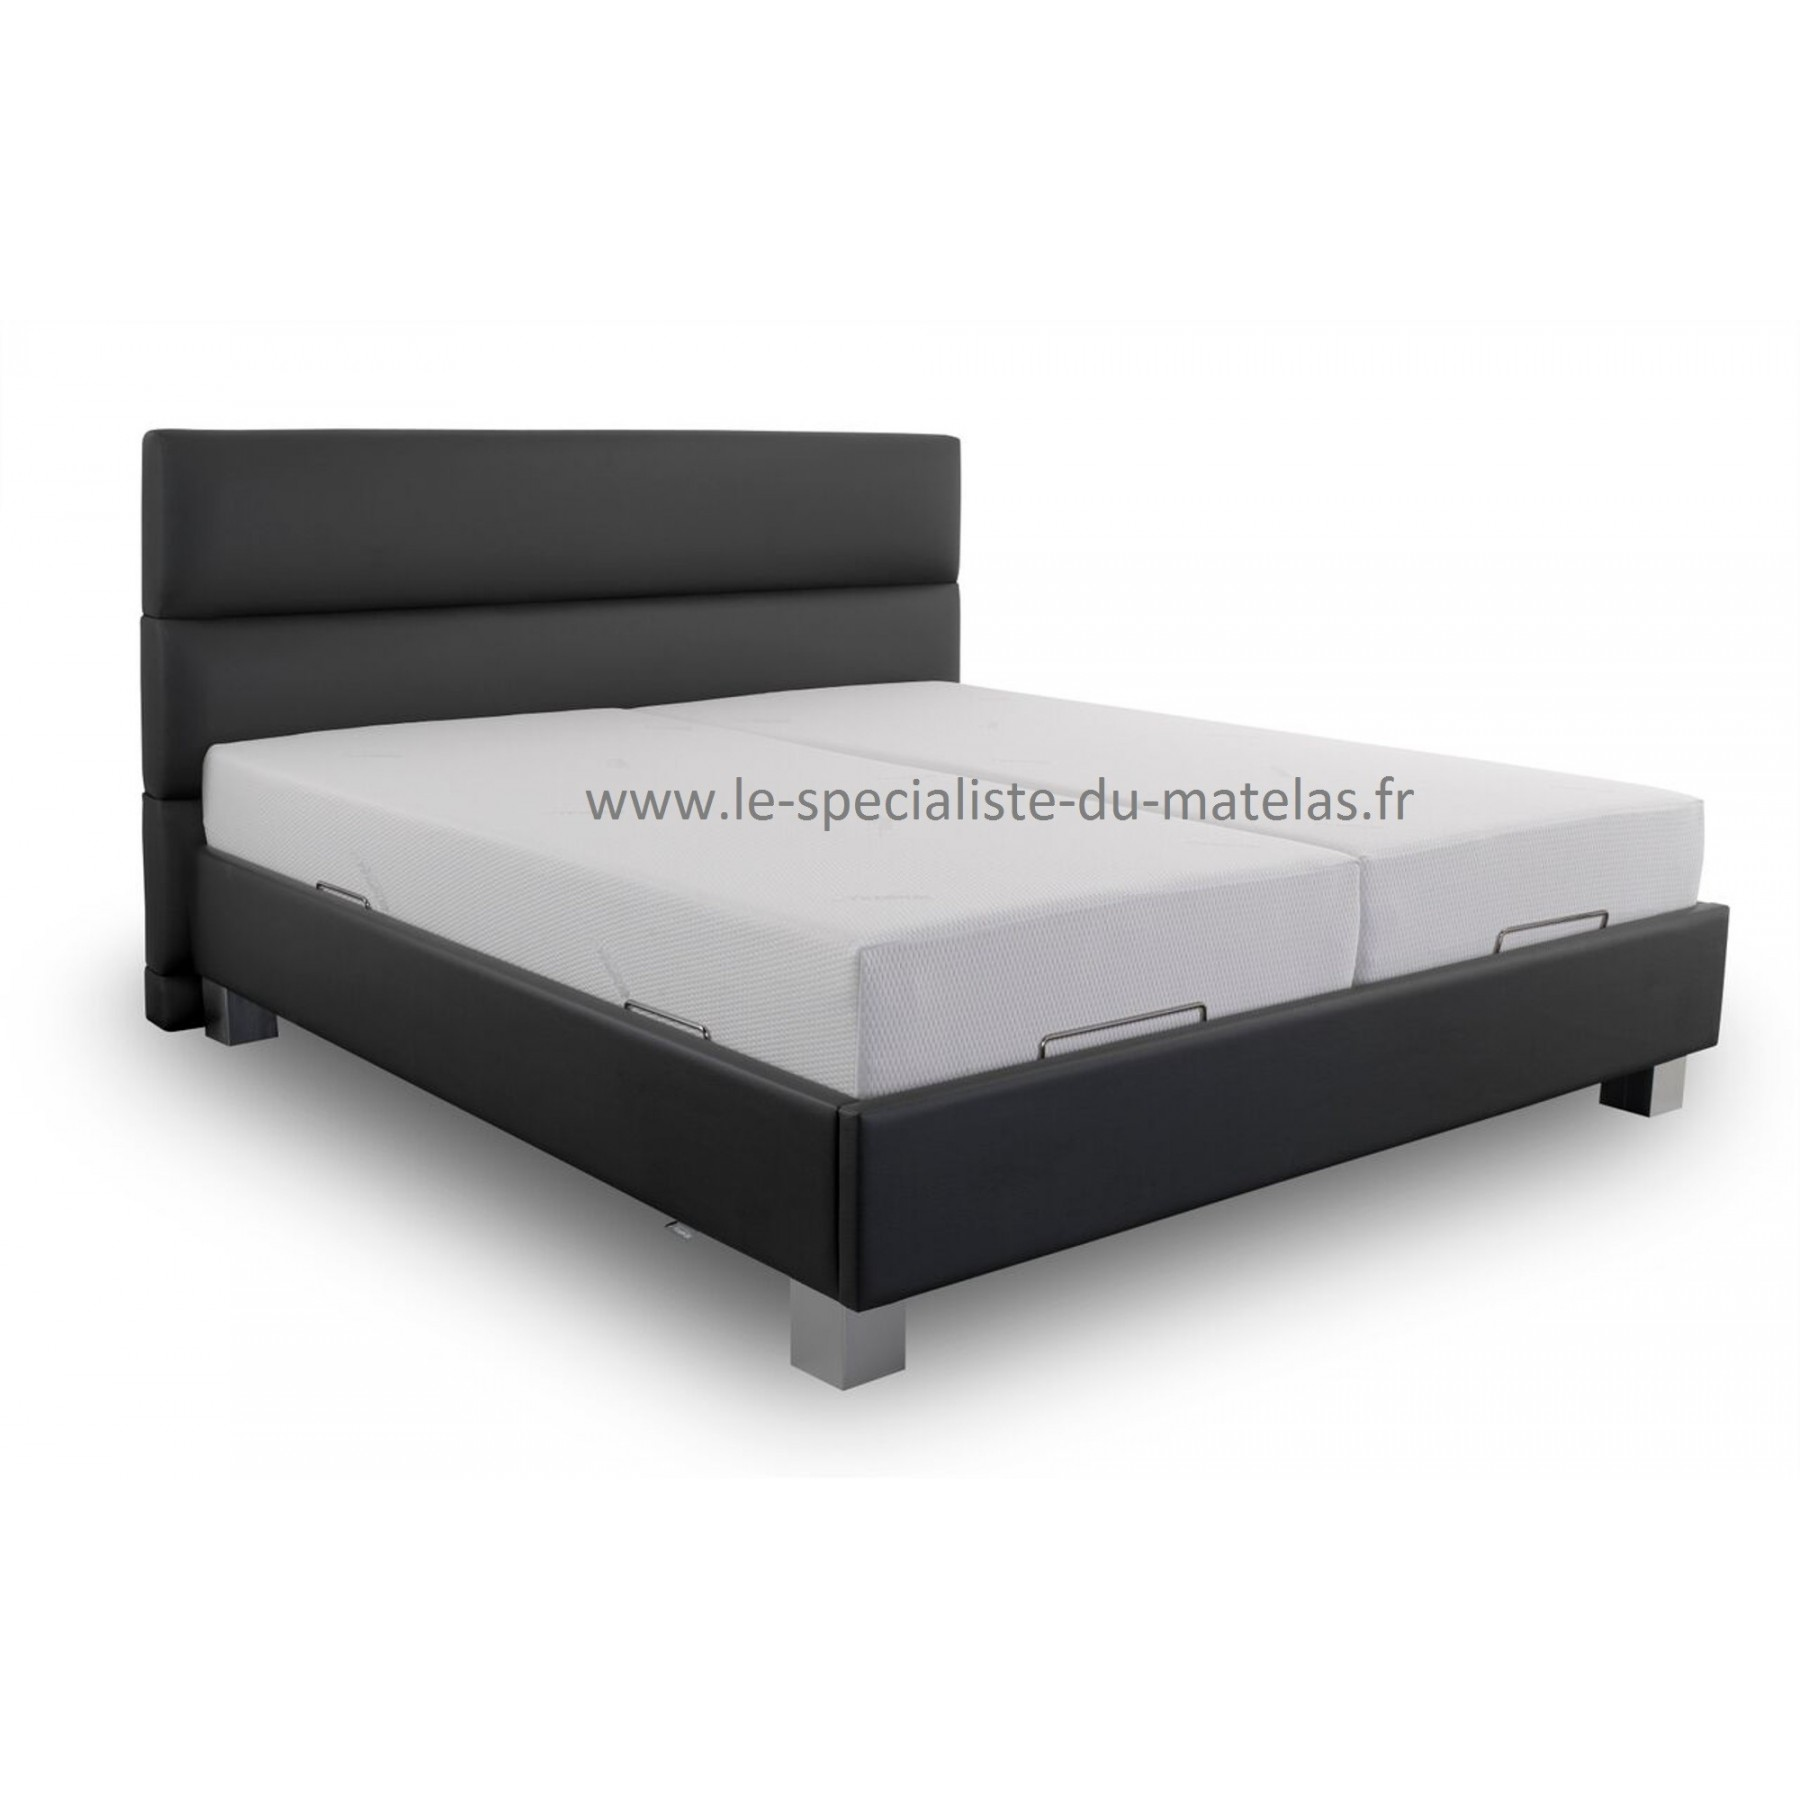 matelas tempur 180x200 tempur uno 180x200 full size mattress sets leon 39 s tempur original. Black Bedroom Furniture Sets. Home Design Ideas